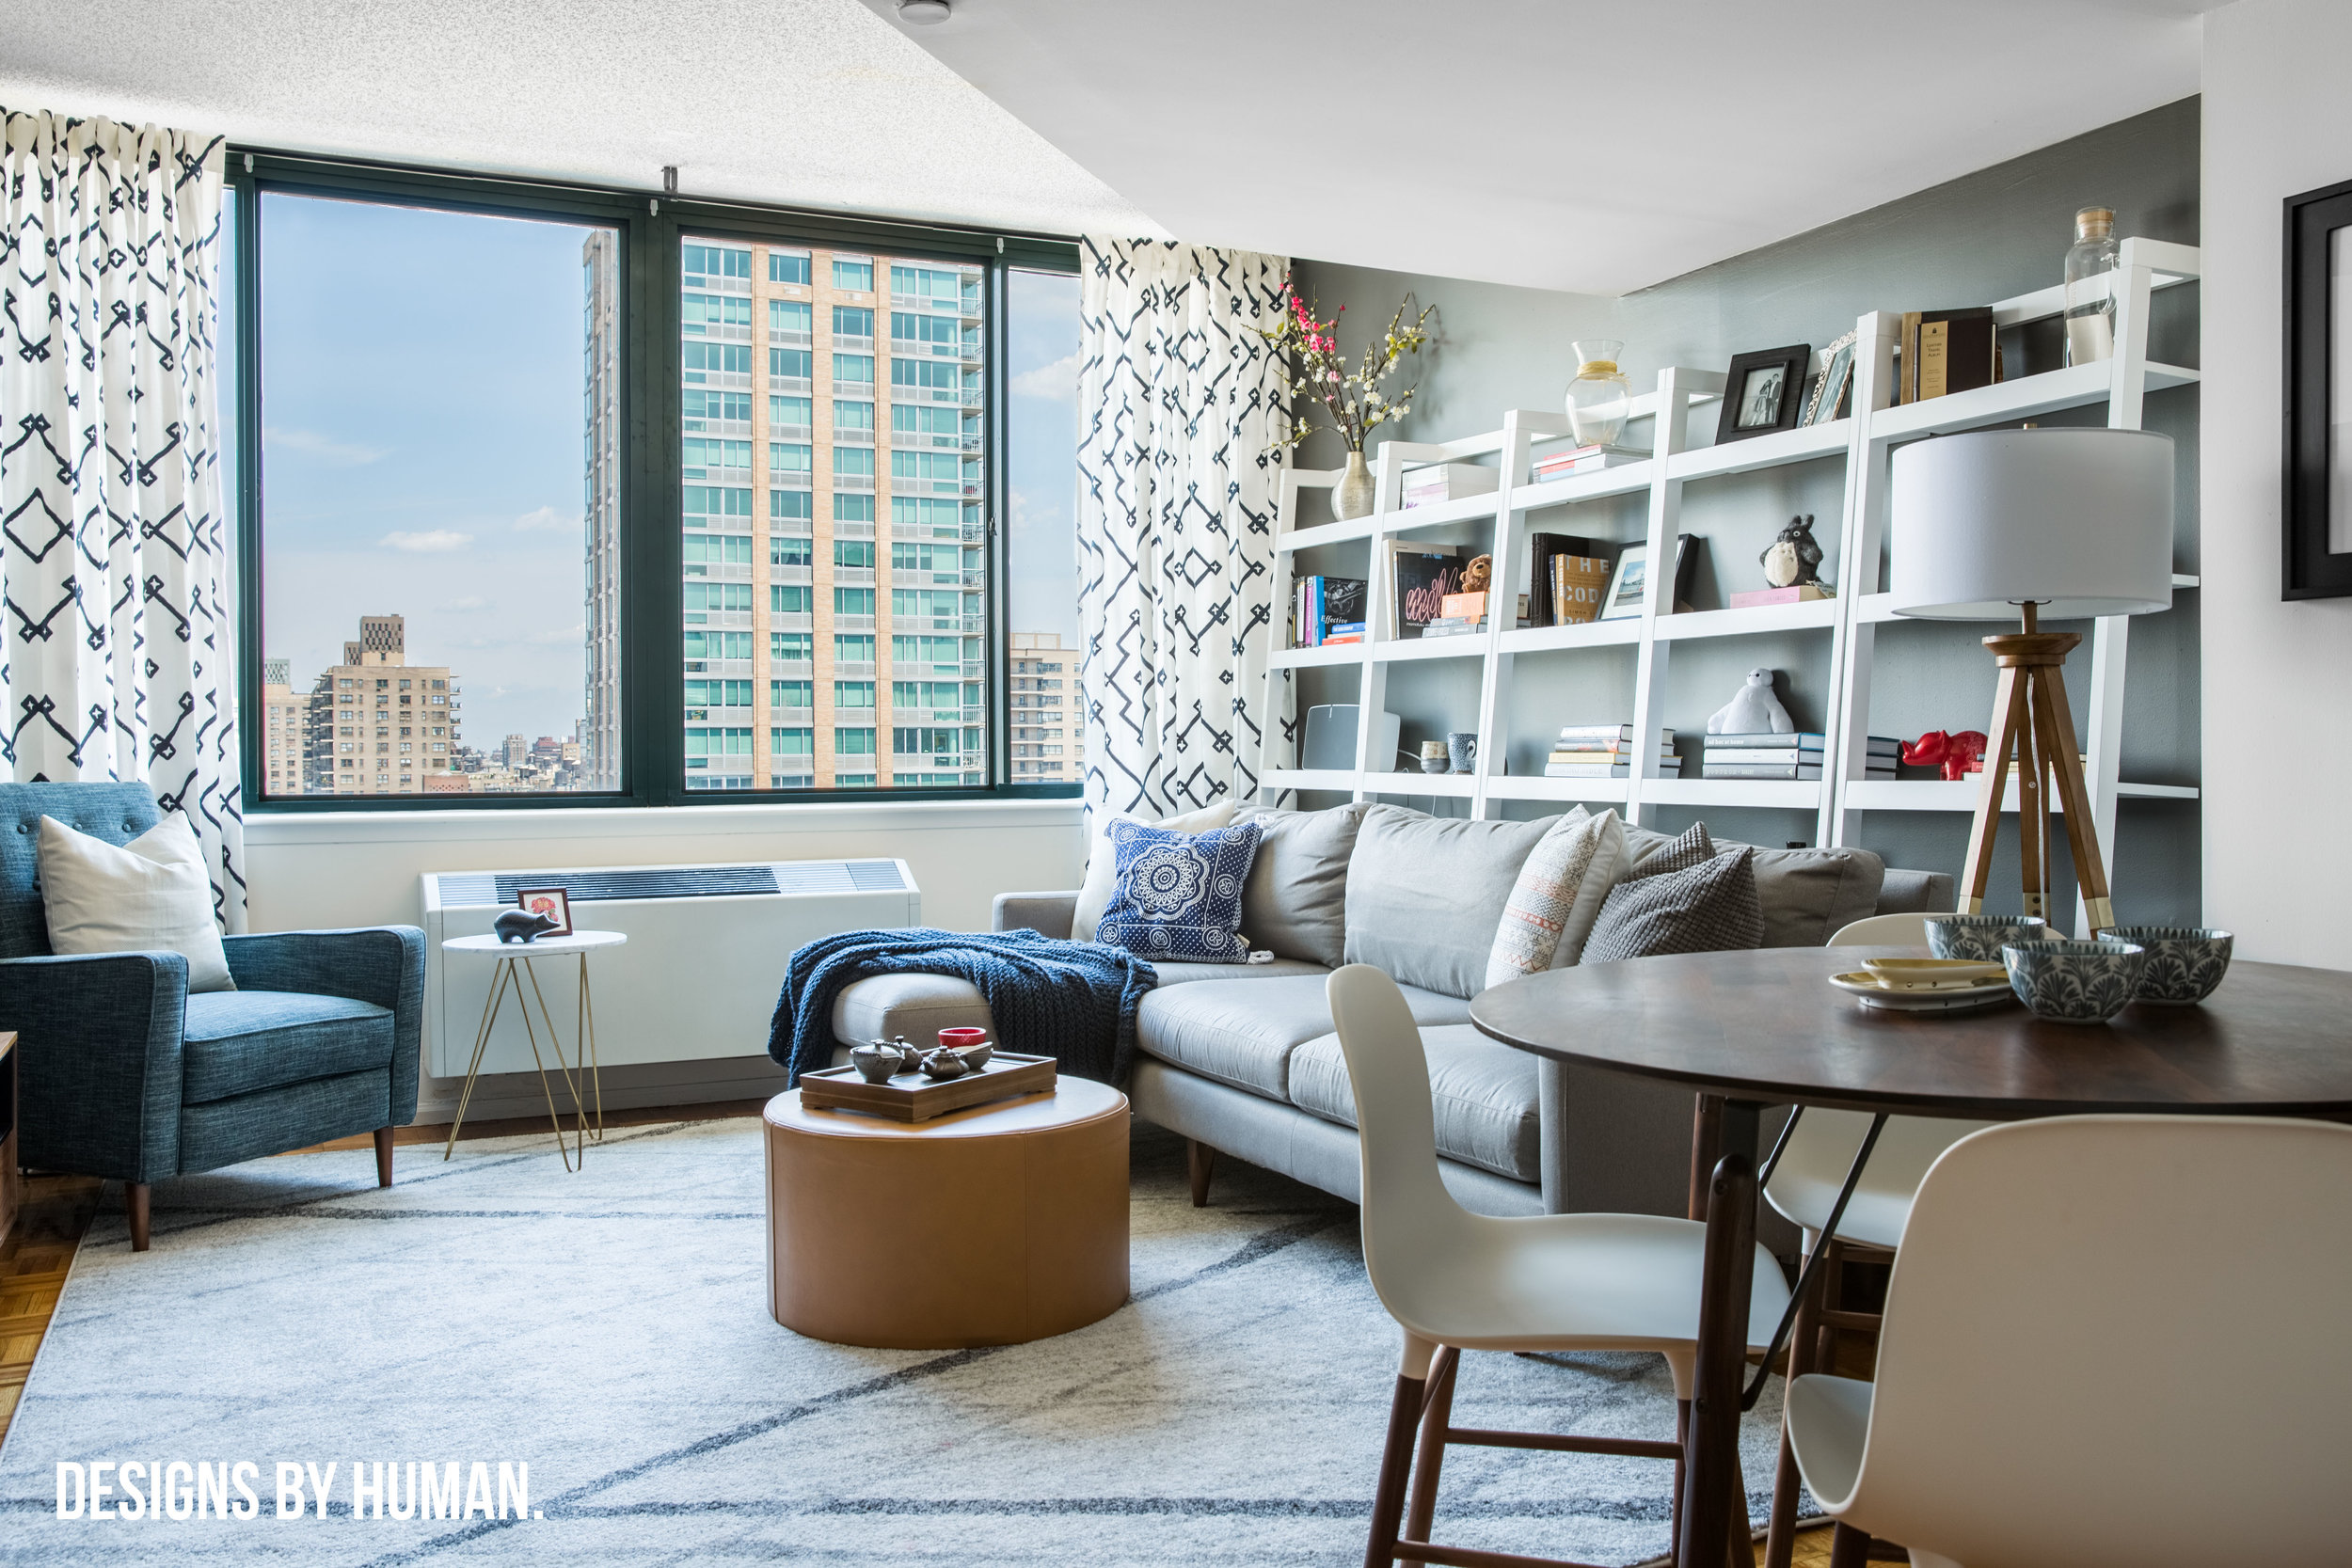 Living Room - Feng Apartment by  Designs By Human . We used dark gray accent walls to help to add depth to the space.